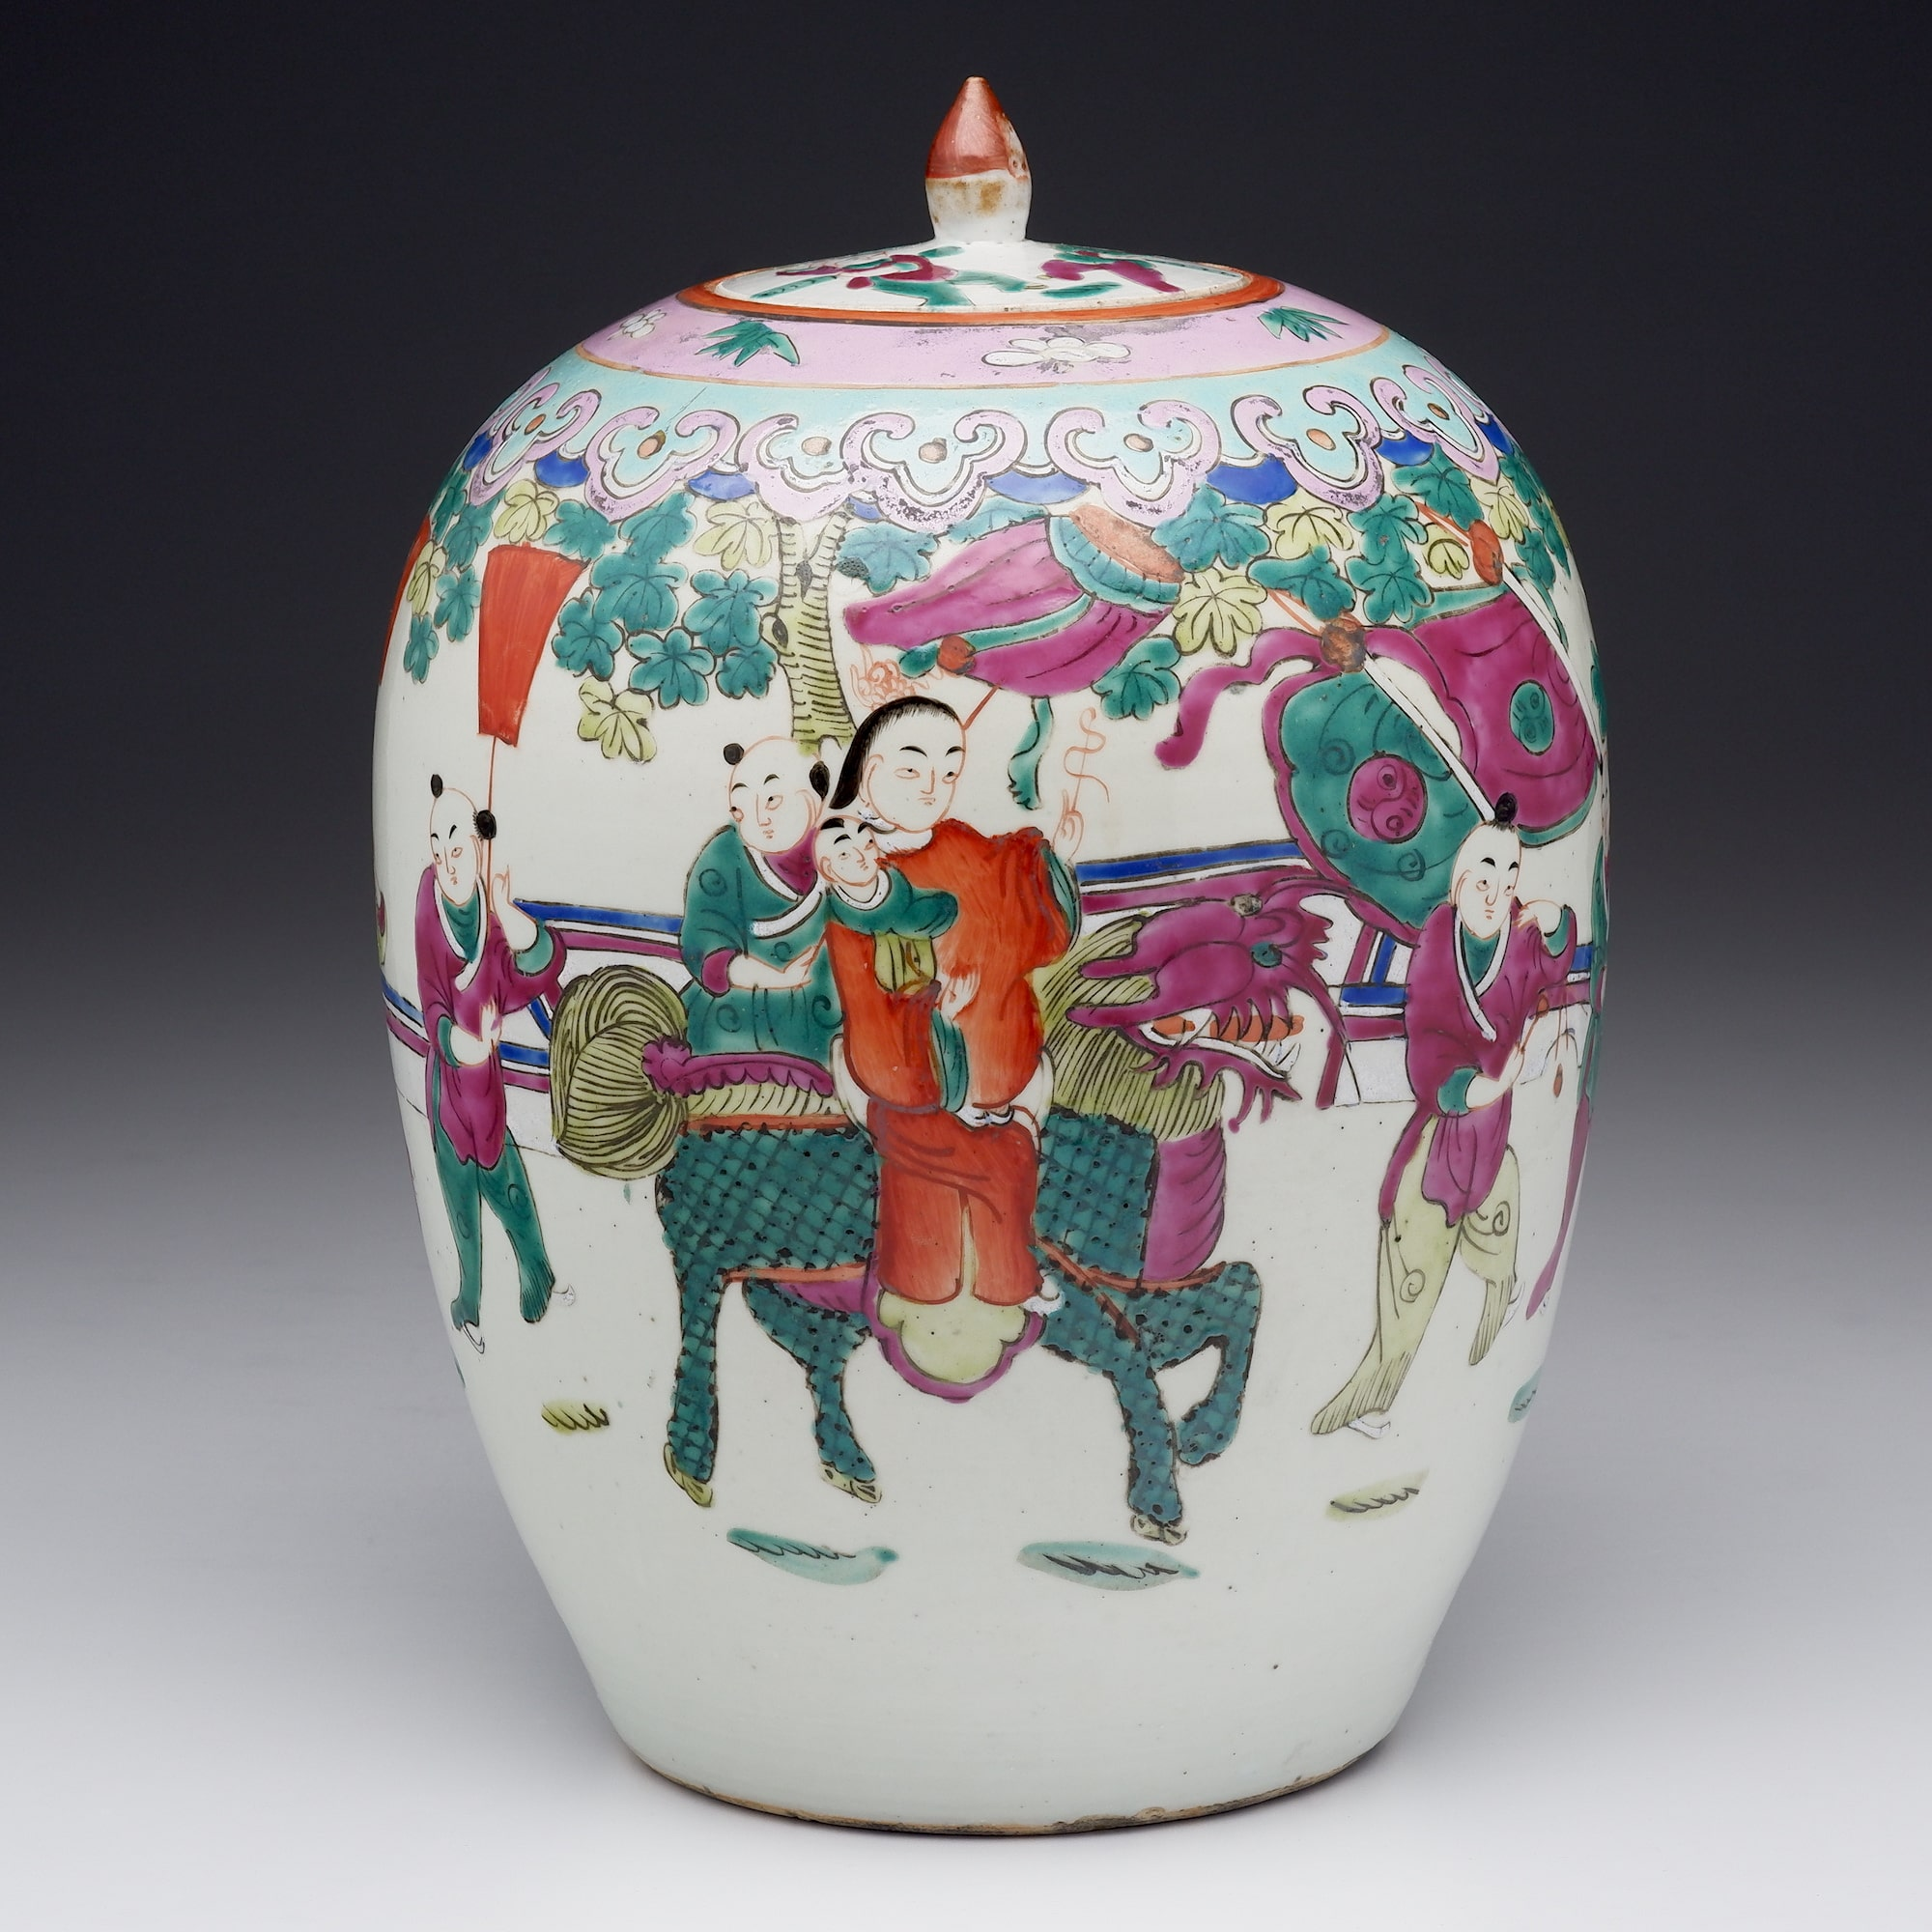 'Antique Chinese Cantonese Famille Rose Large Jar, Early 20th Century'